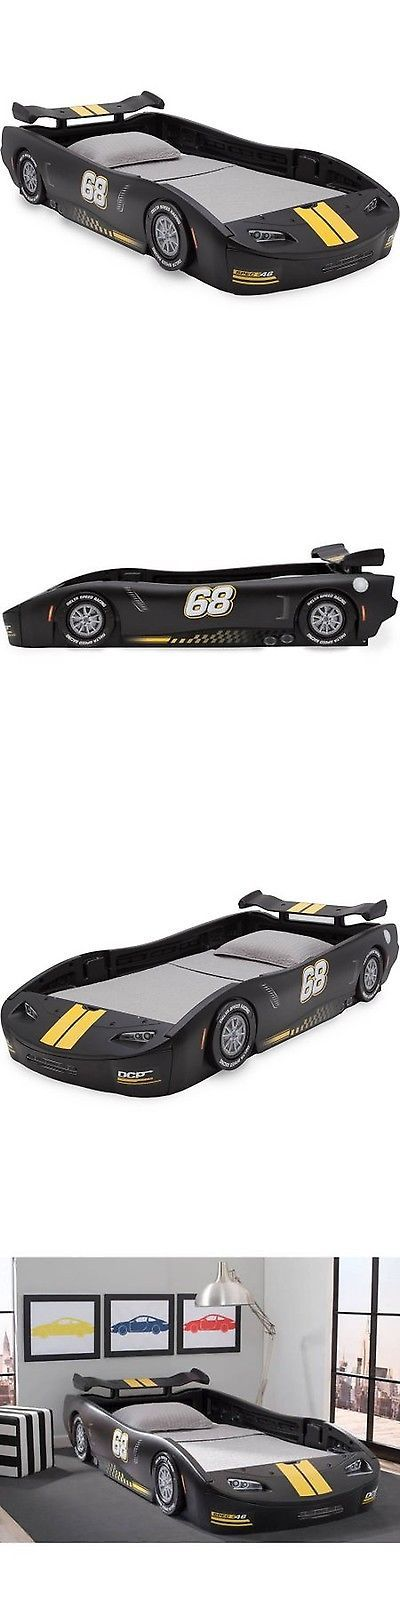 Kids Furniture: Delta Children Turbo Race Car Twin Bed Choose Your Color Black BUY IT NOW ONLY: $215.99